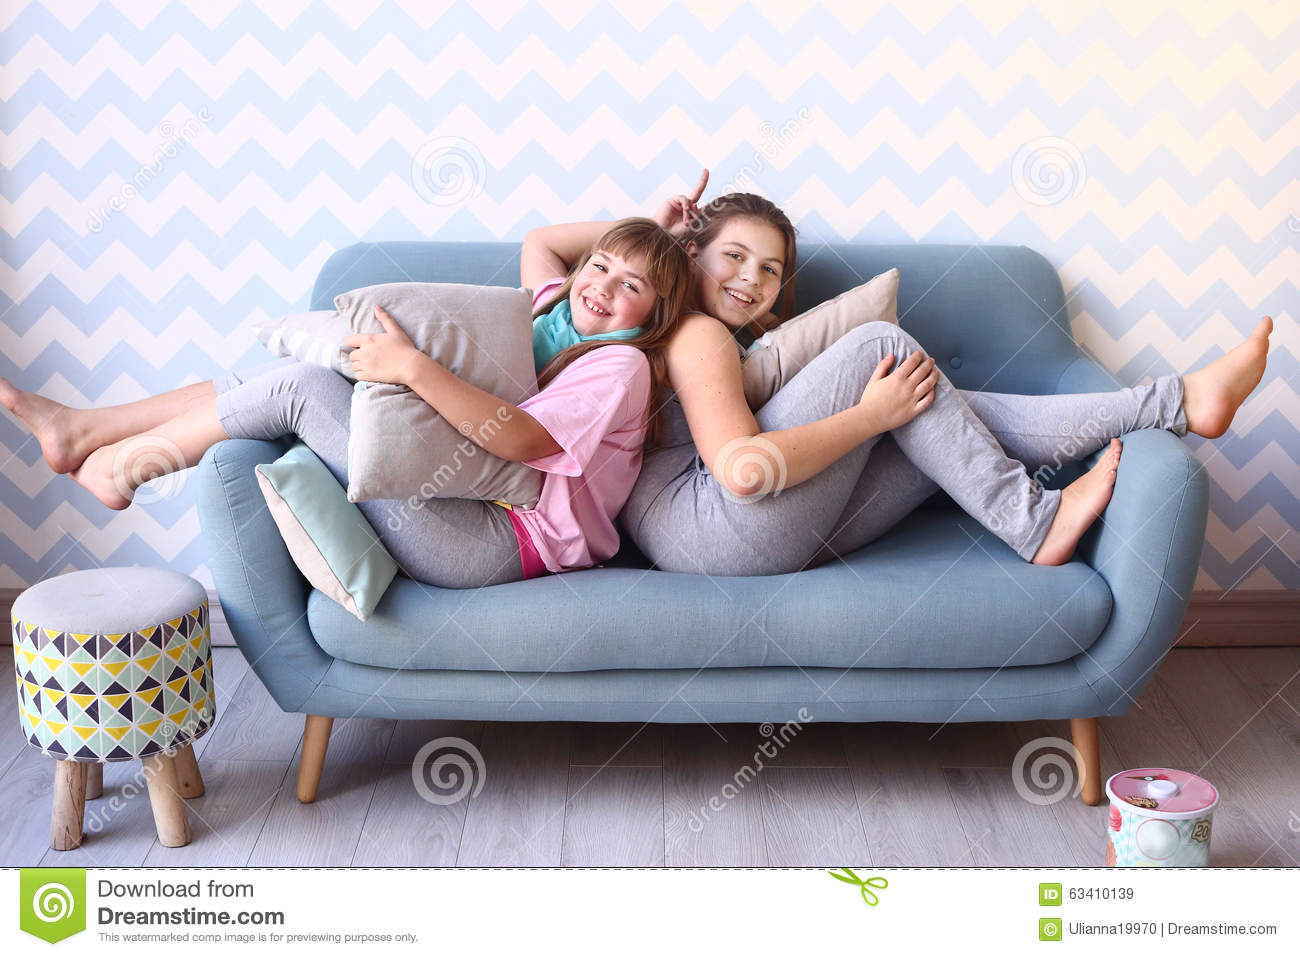 Bettsofa Jugend Teenager Blond Sister In Pajamas On The Sofa Stock Image Image